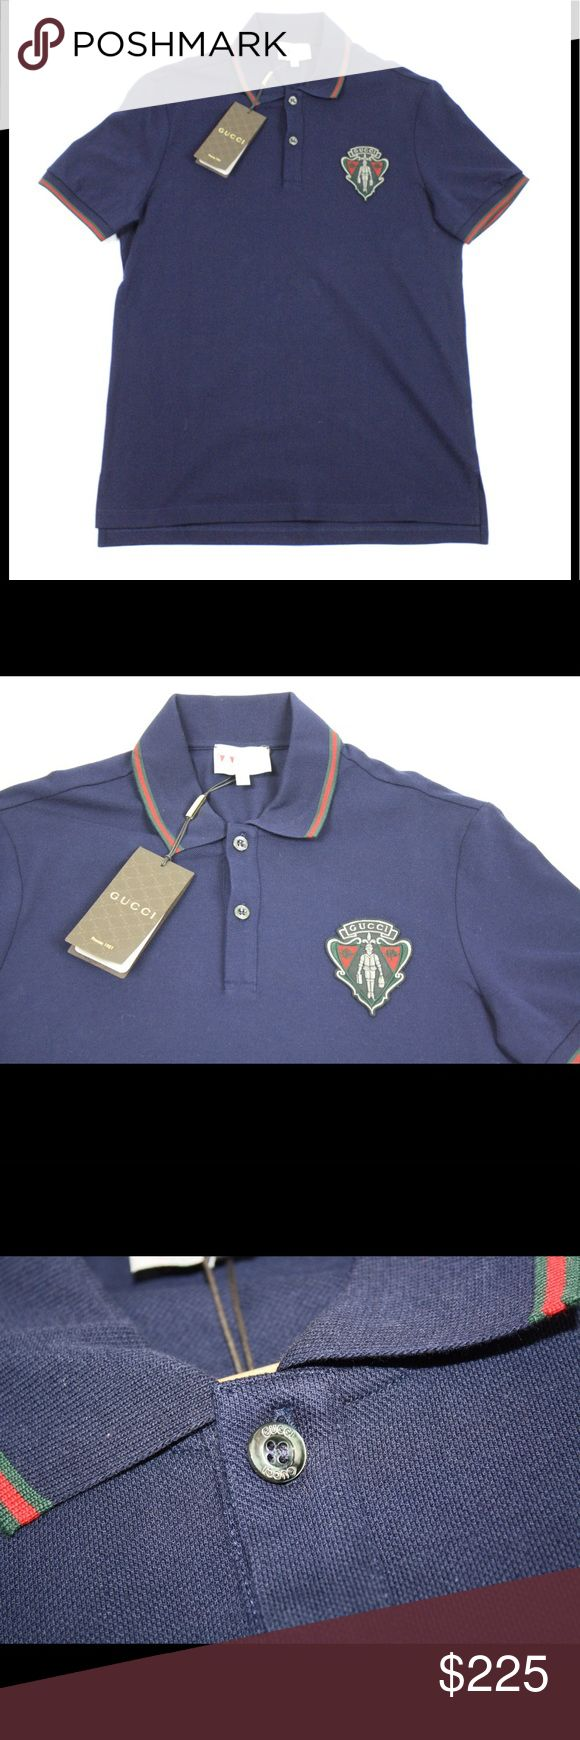 """[Gucci] men's equestrian polo shirt emblem small [Gucci] men's equestrian polo shirt with emblem patch - men's small -100% cotton - navy blue - chest 37"""" - length 27.5"""" - sleeve 8"""" - shoulder 17"""" - new with tags Gucci Shirts Polos"""